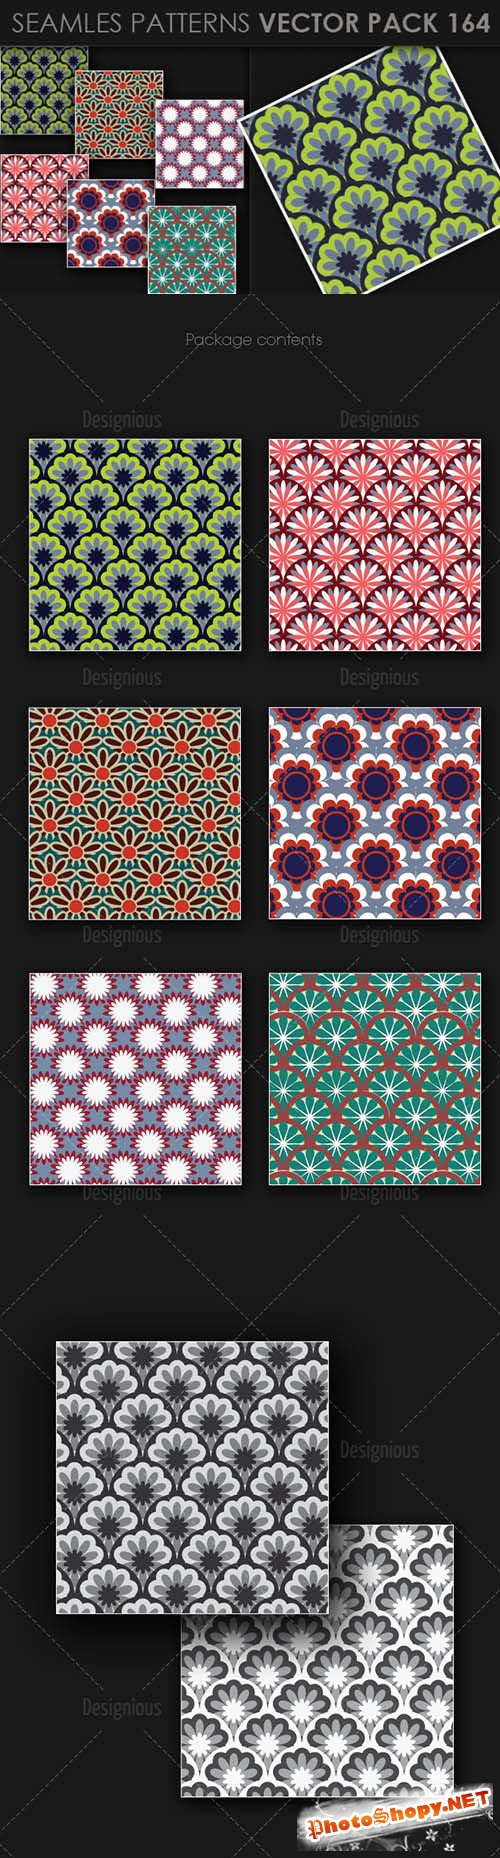 6 Seamless Patterns Vector Pack 164